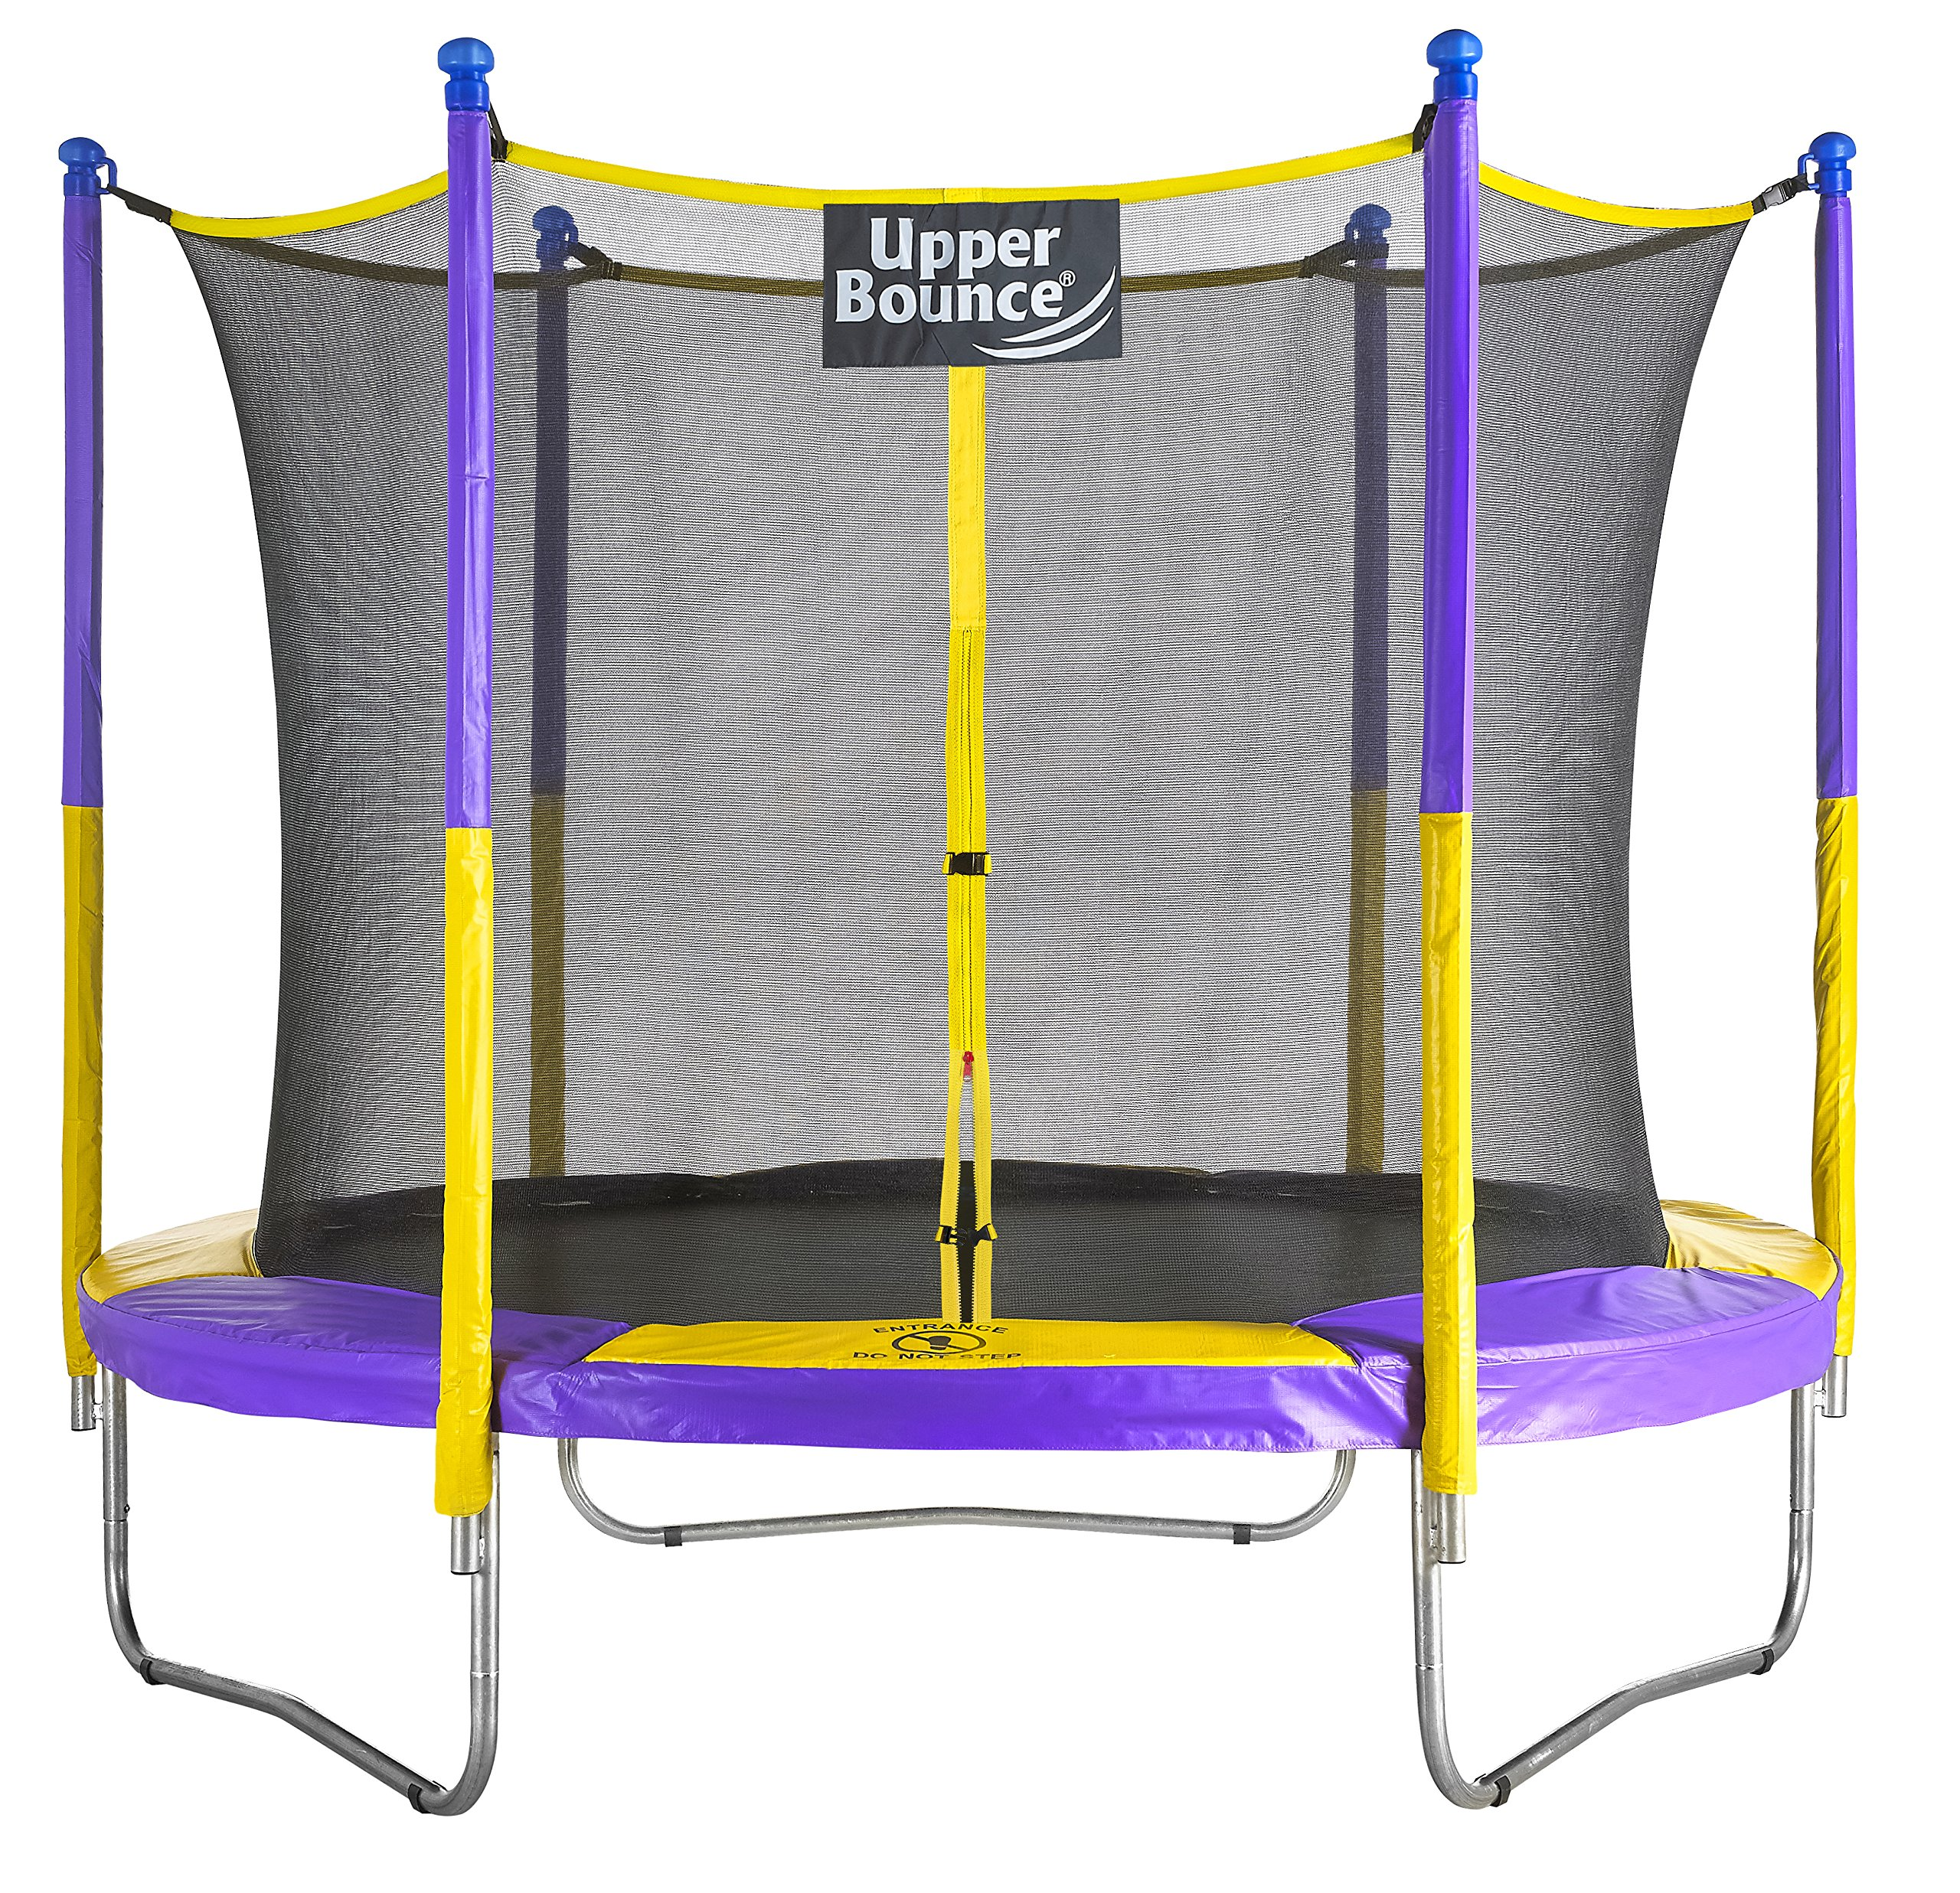 Upper Bounce UB03EC-09E 9'. Trampoline & Enclosure Set Equipped with The New Easy Assemble Feature by Upper Bounce (Image #1)